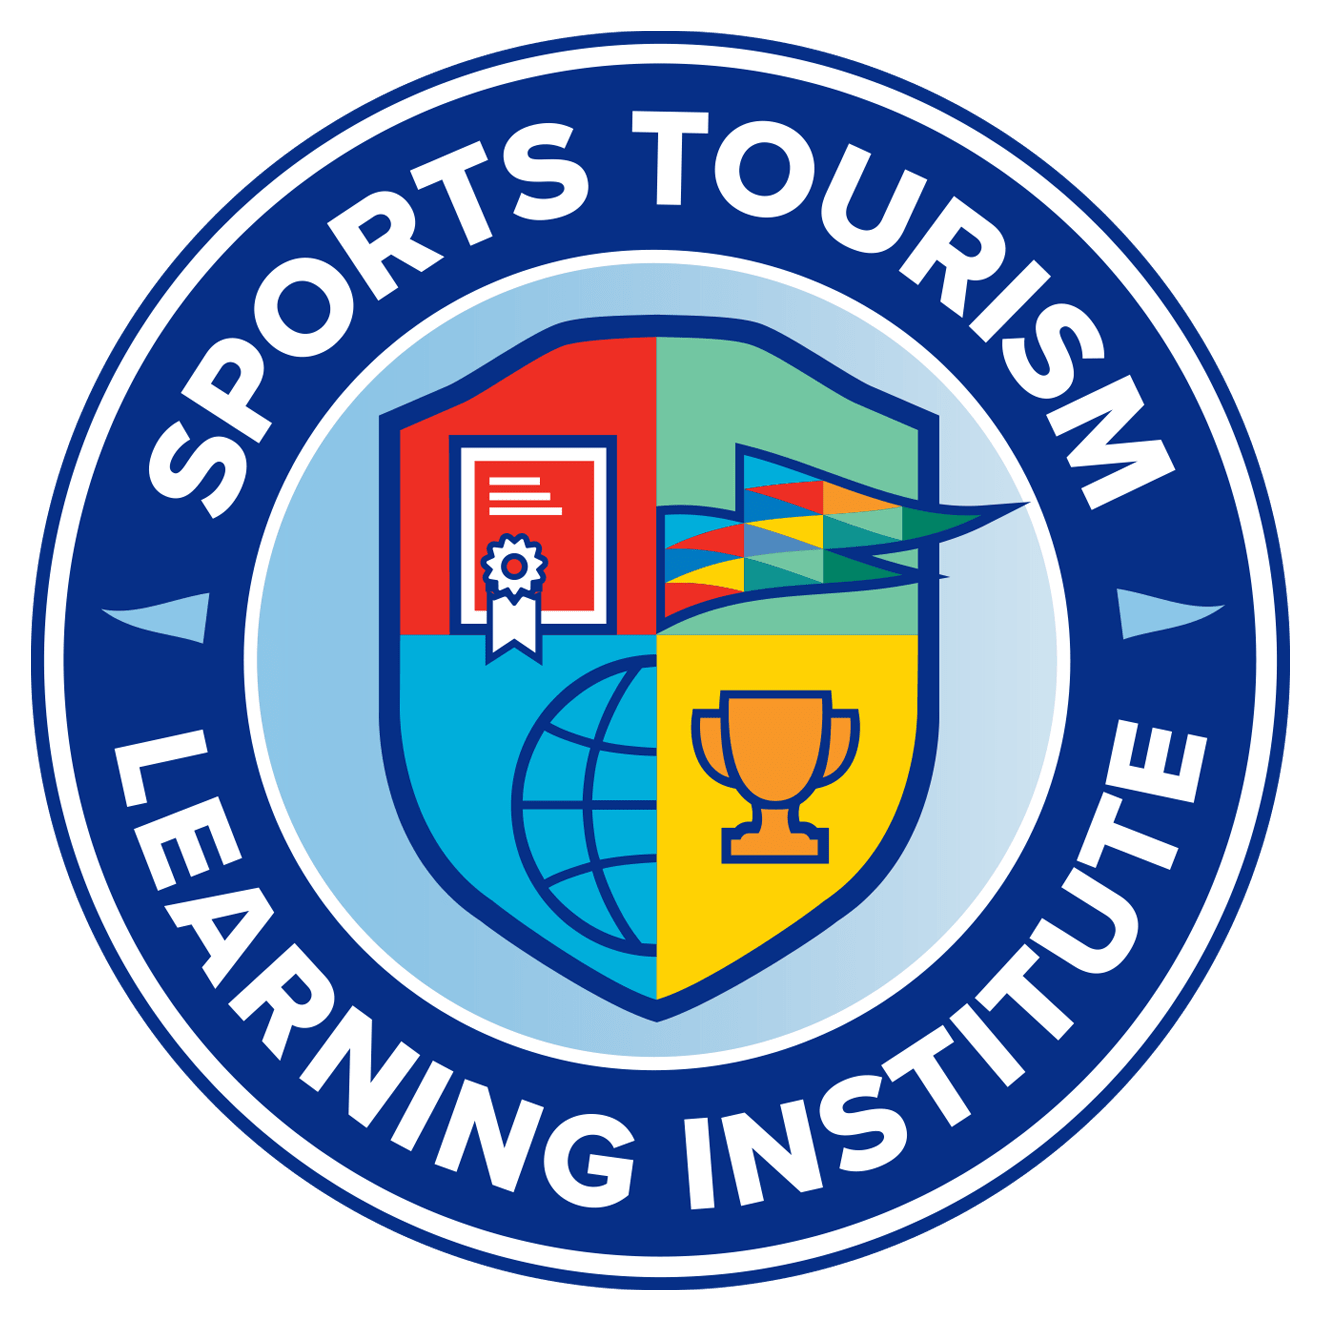 Sports Tourism Learning Institute